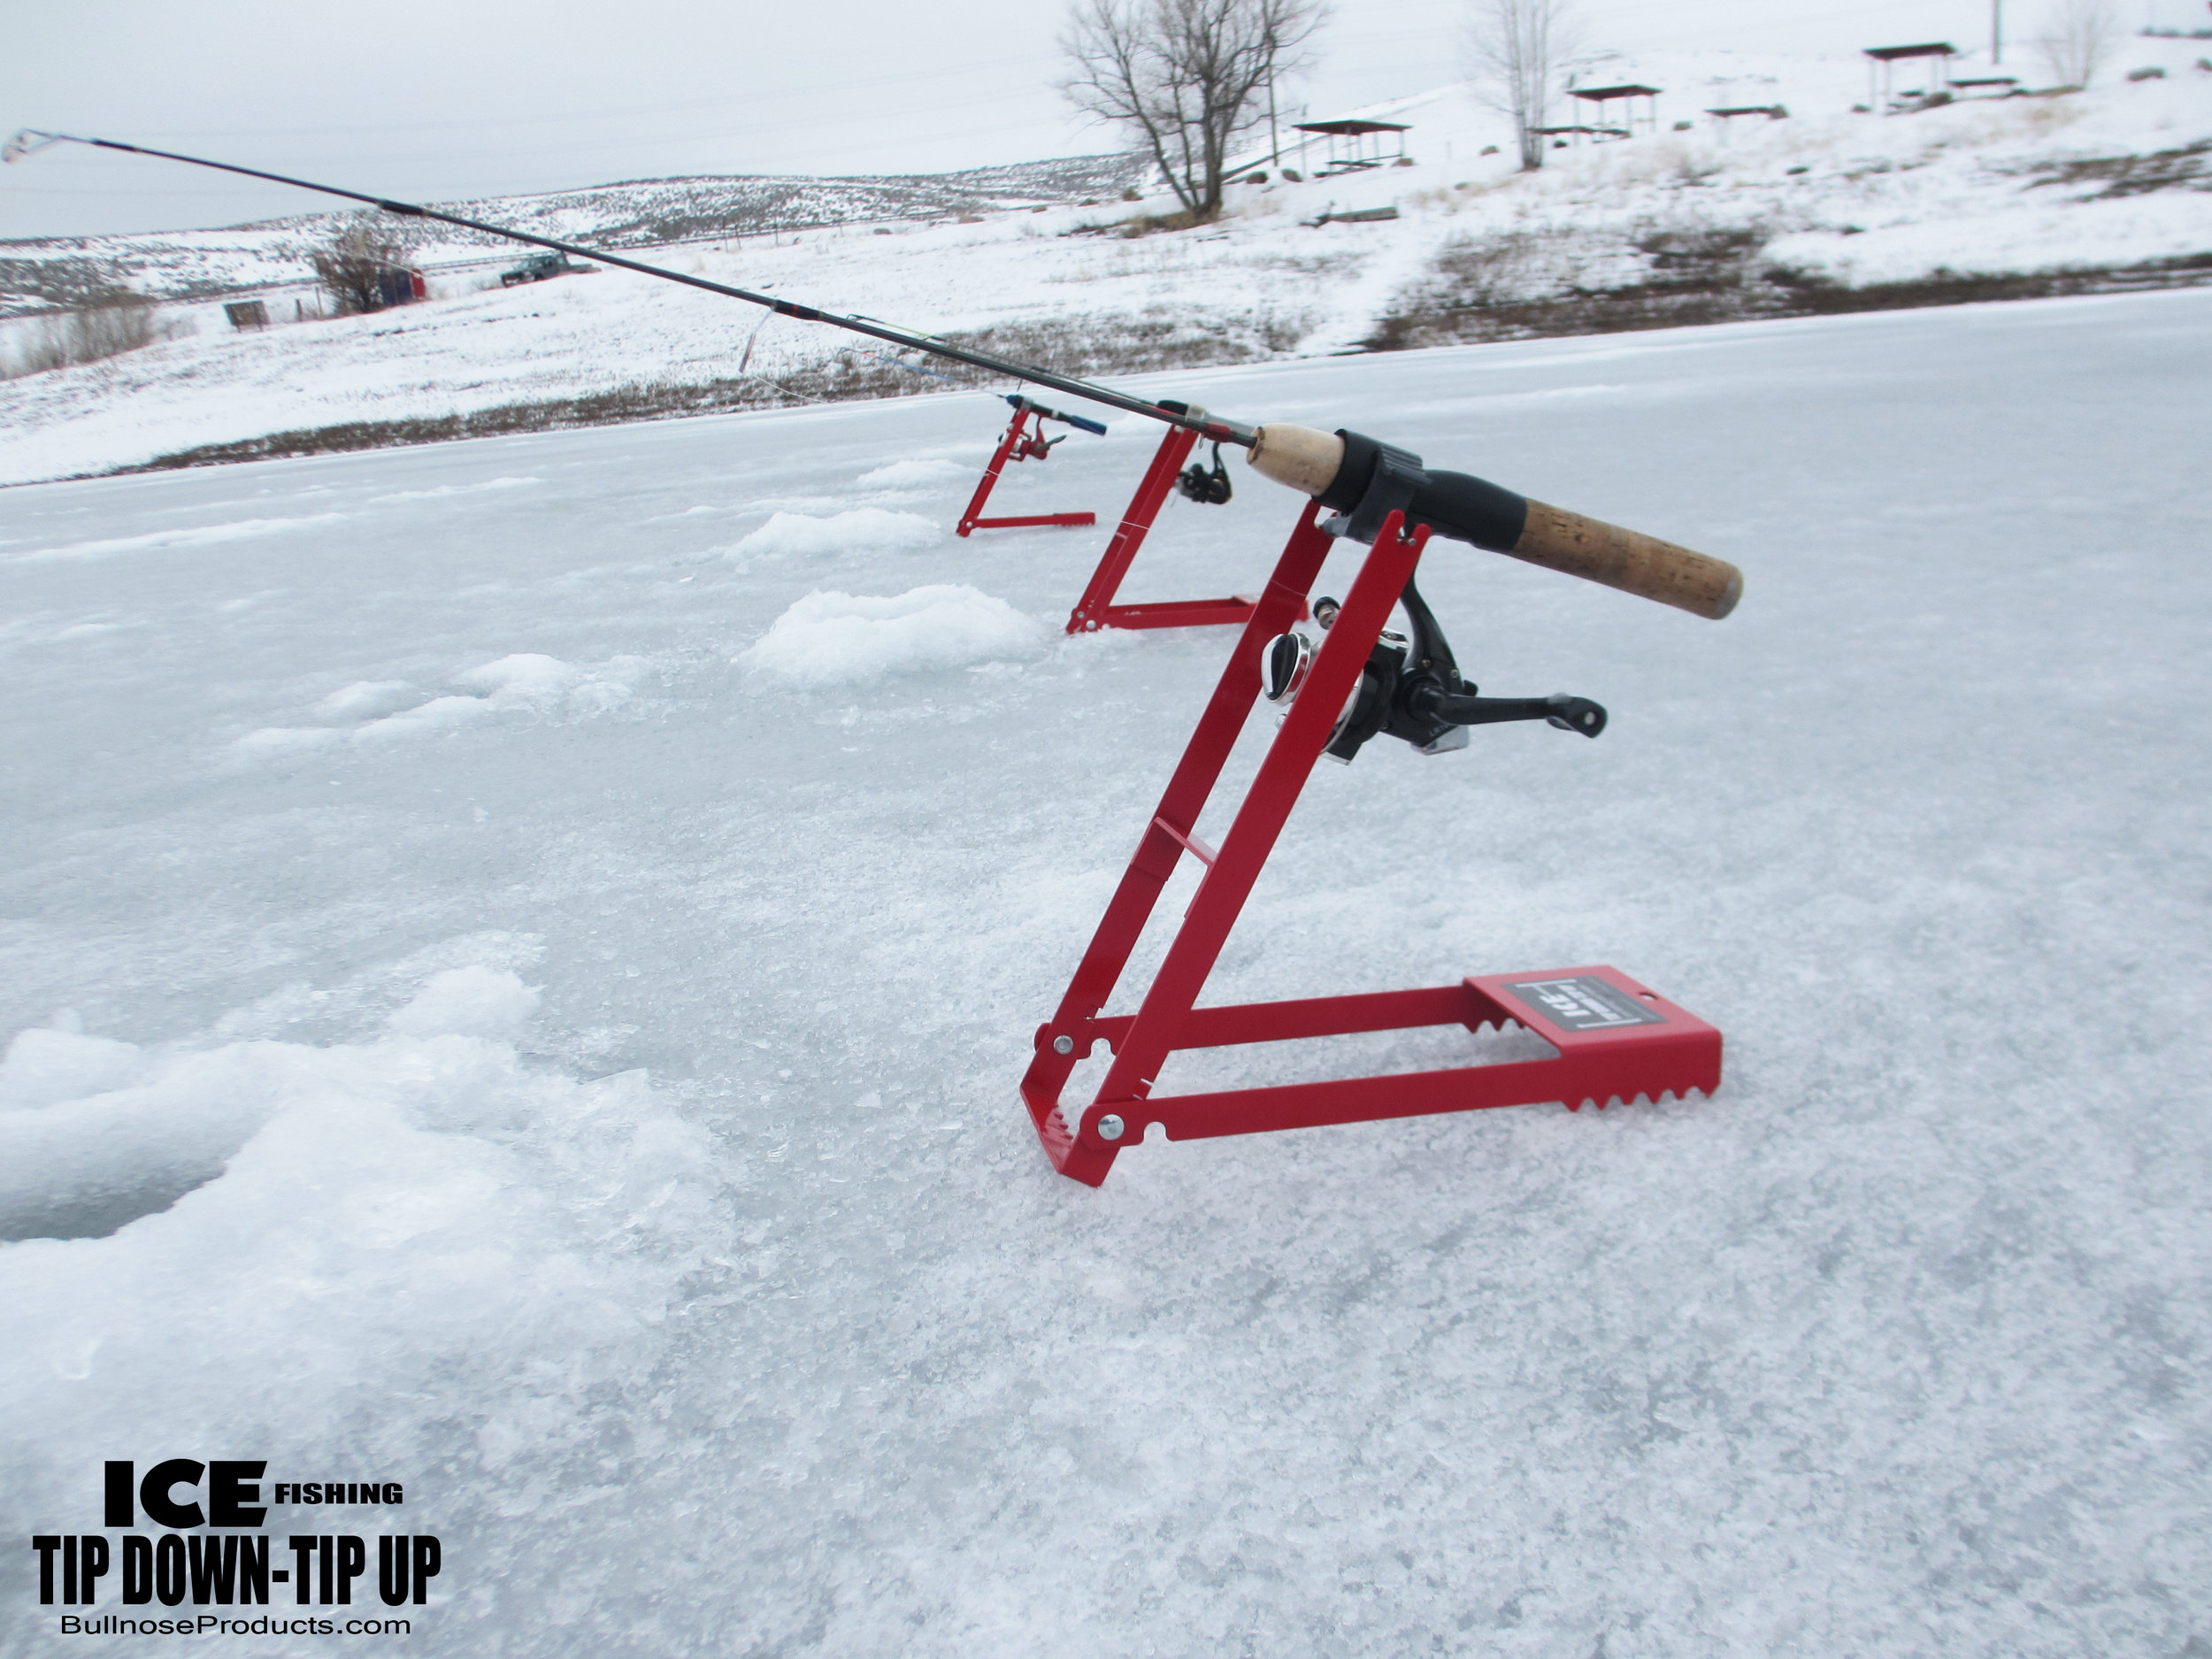 Ice fishing tip down tip up